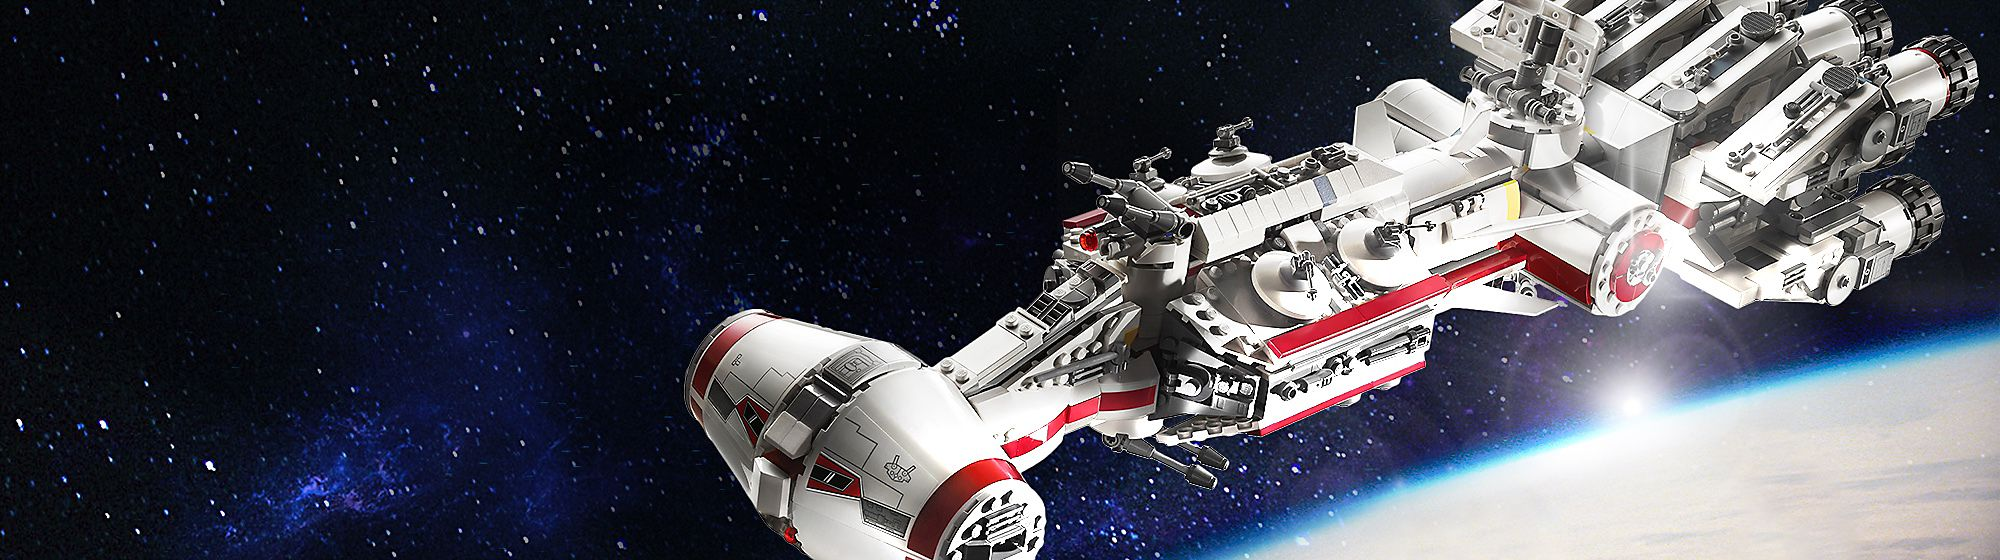 LEGO Inspire imagination and endless fun